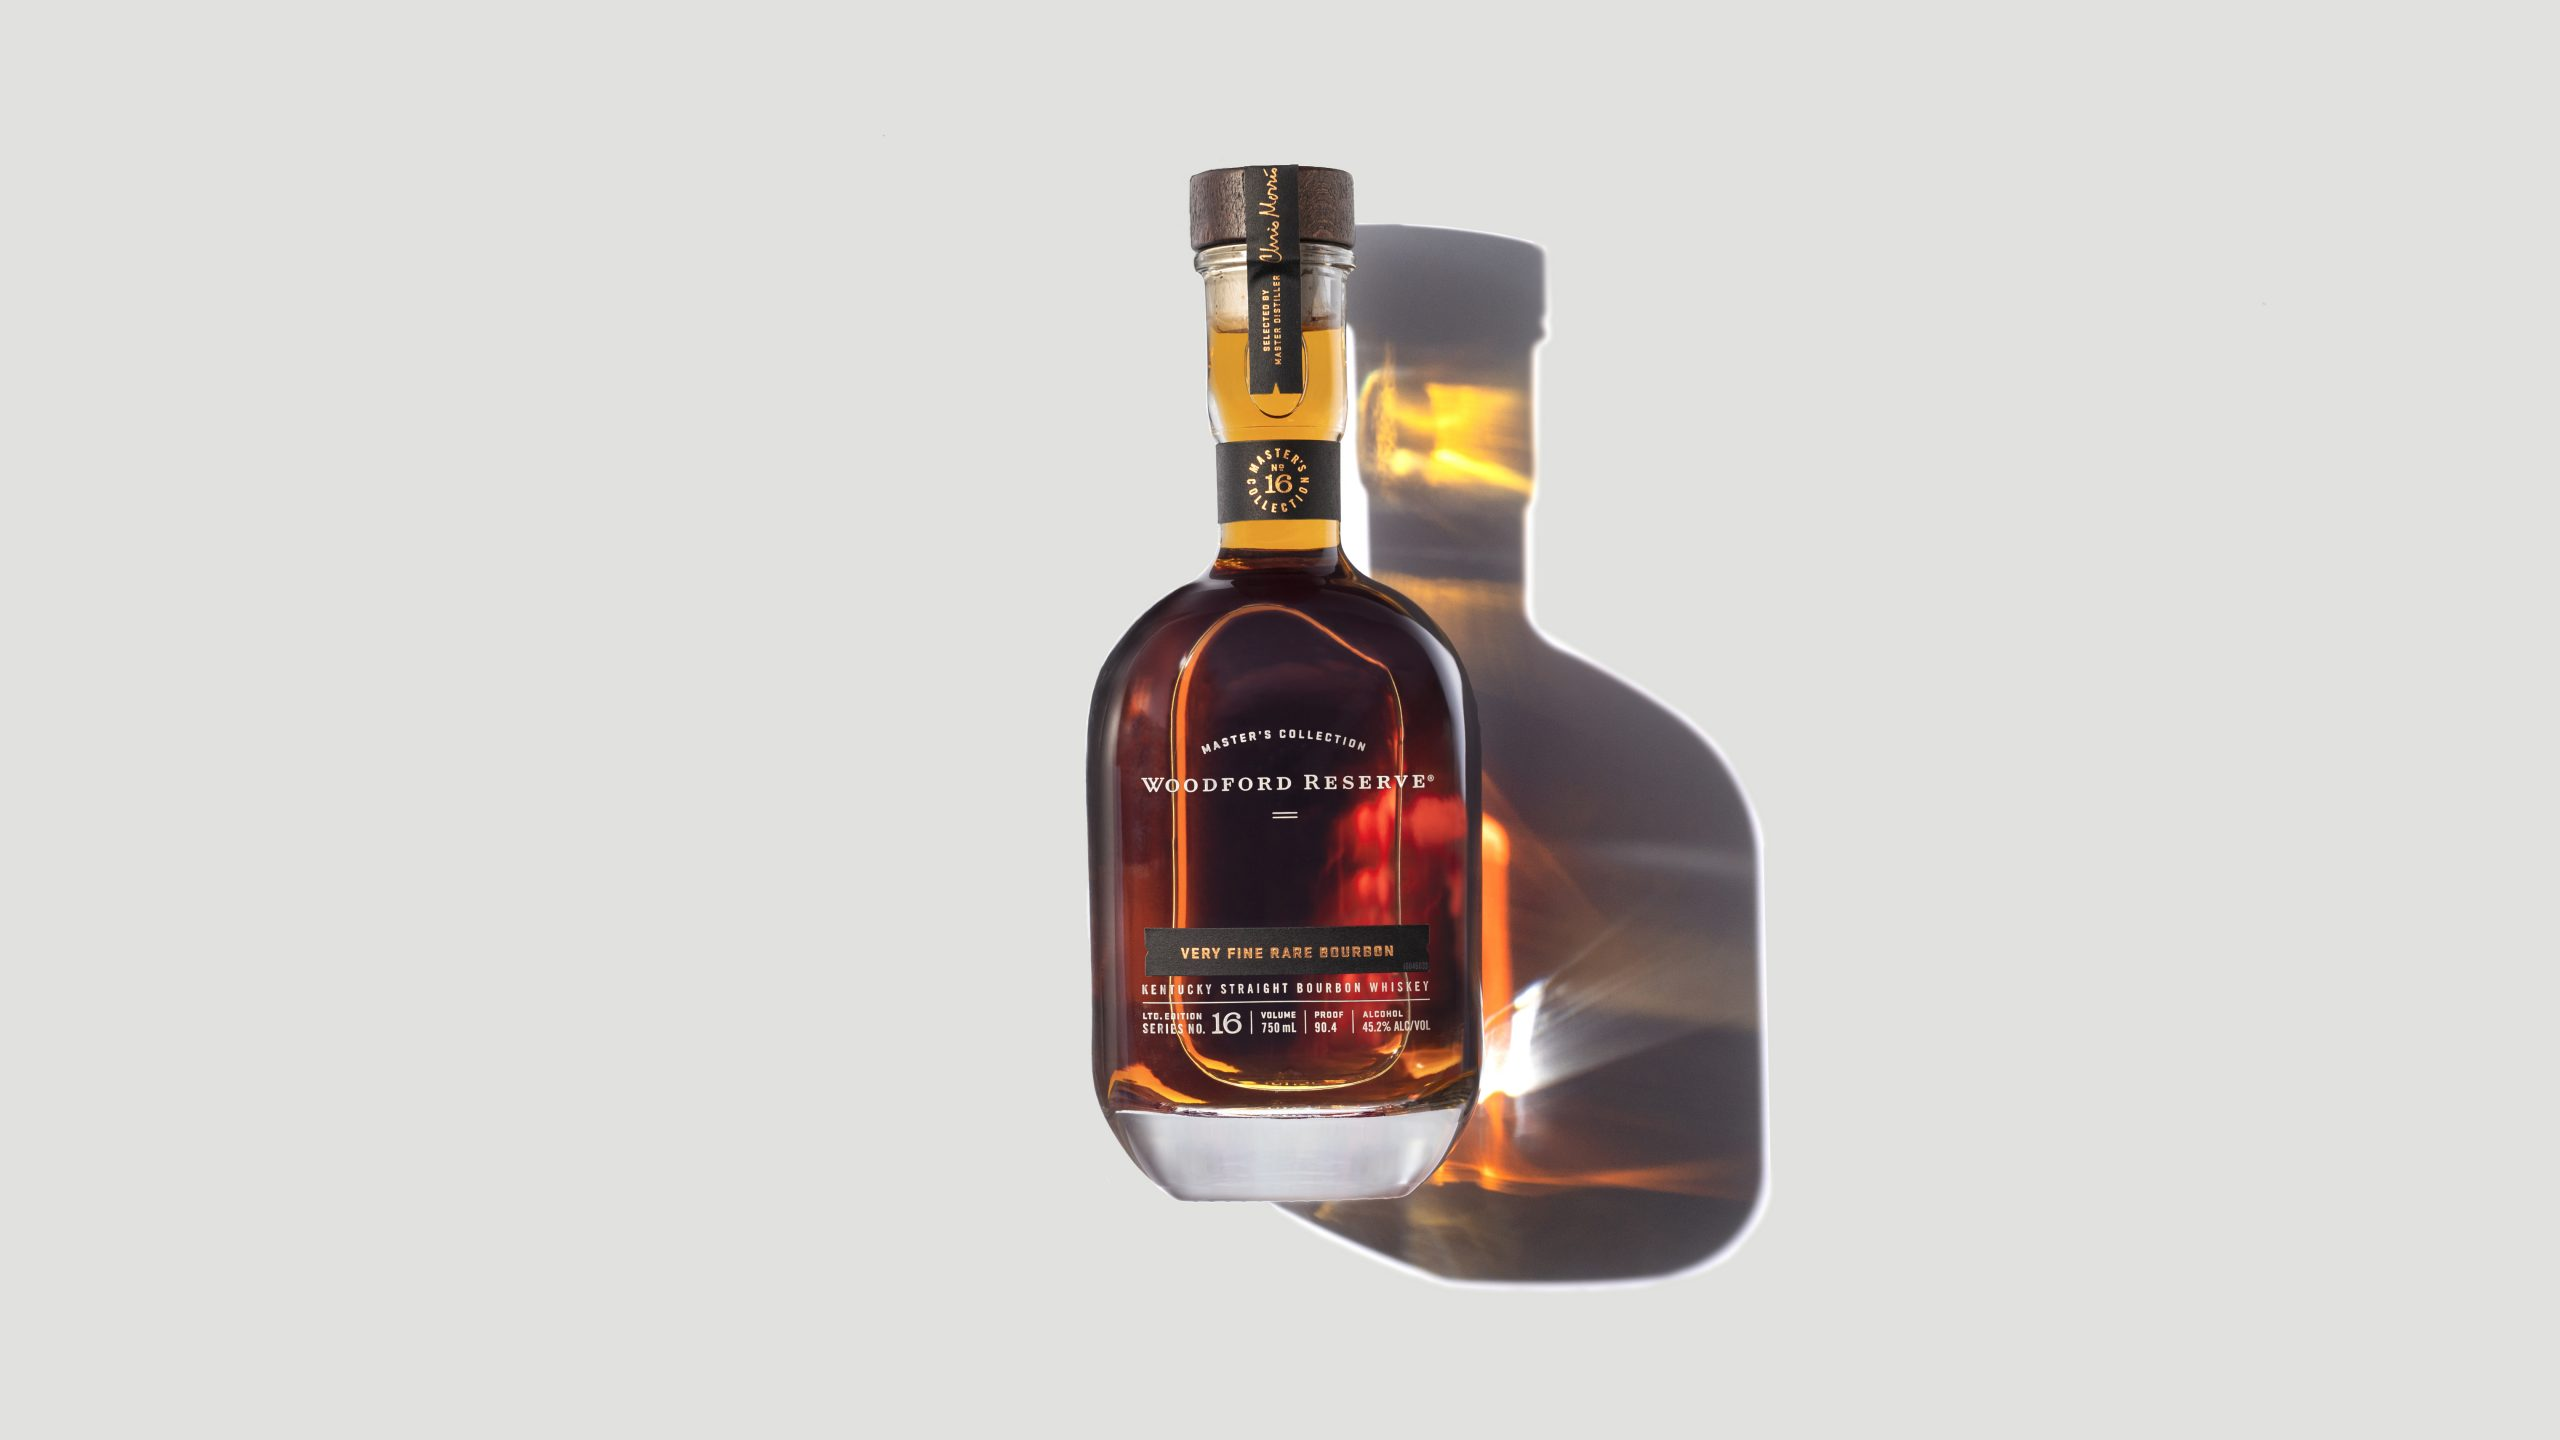 Woodford Reserve 2020 Master's Collection Very Fine Rare Bourbon